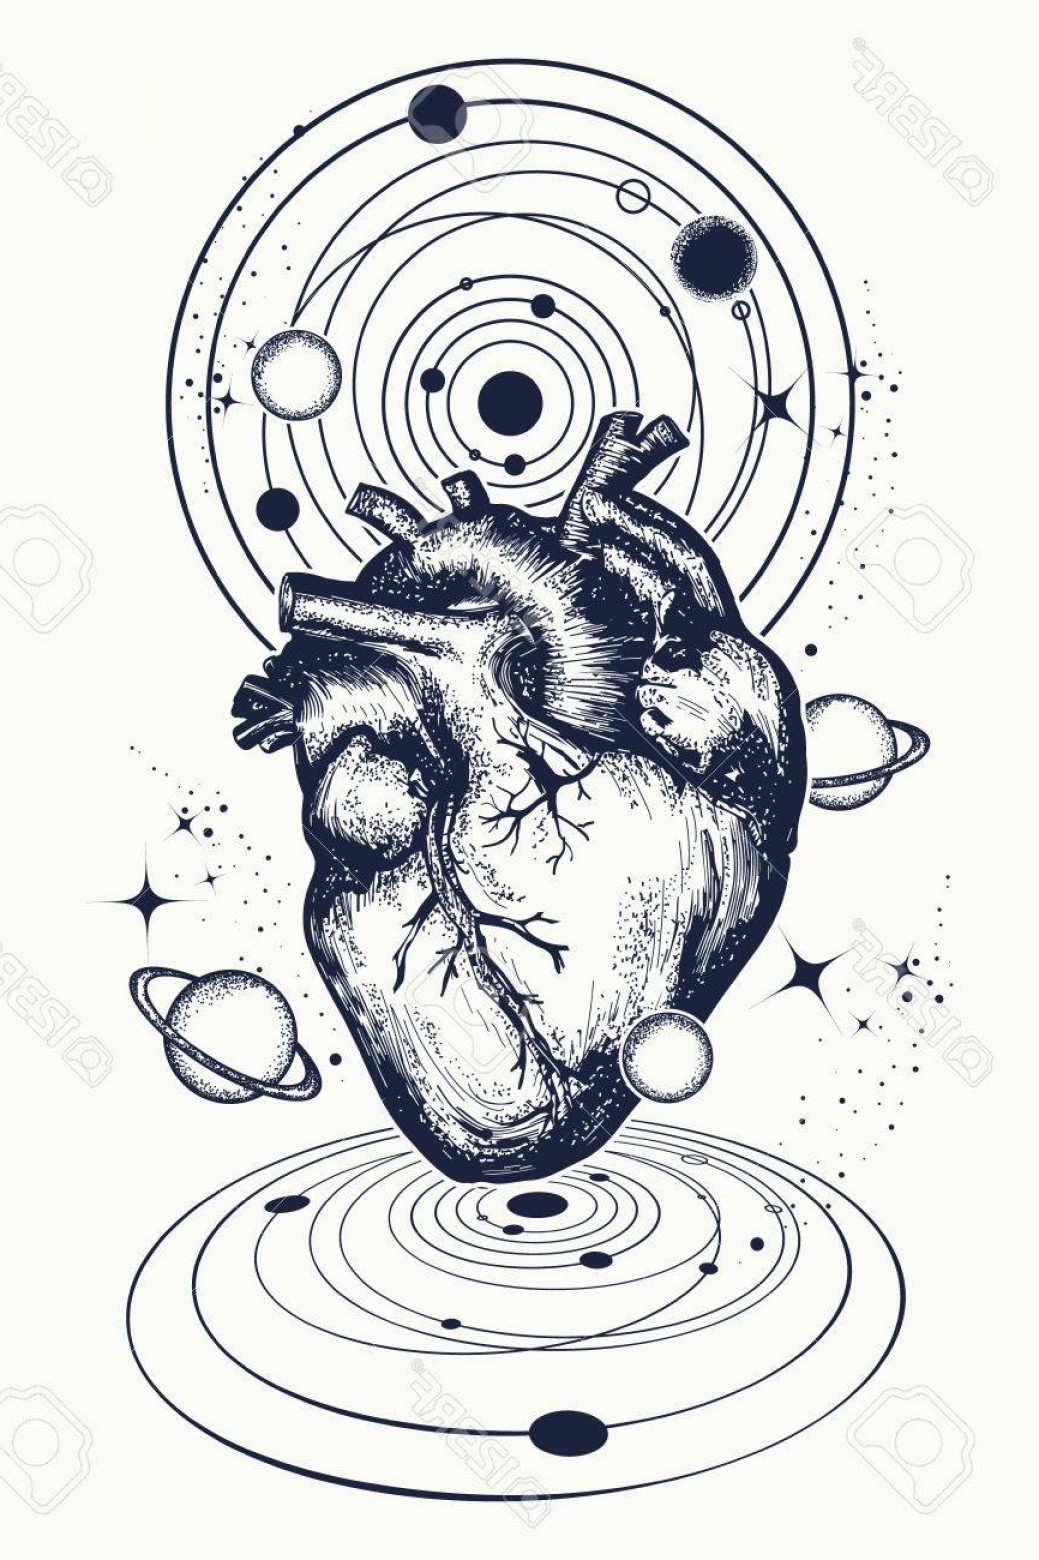 Sacred Heart Vector Genius: Photostock Vector Heart In Space Tattoo Anatomic Heart Among Galaxies And Planets Symbol Of Love Philosophy Psychology